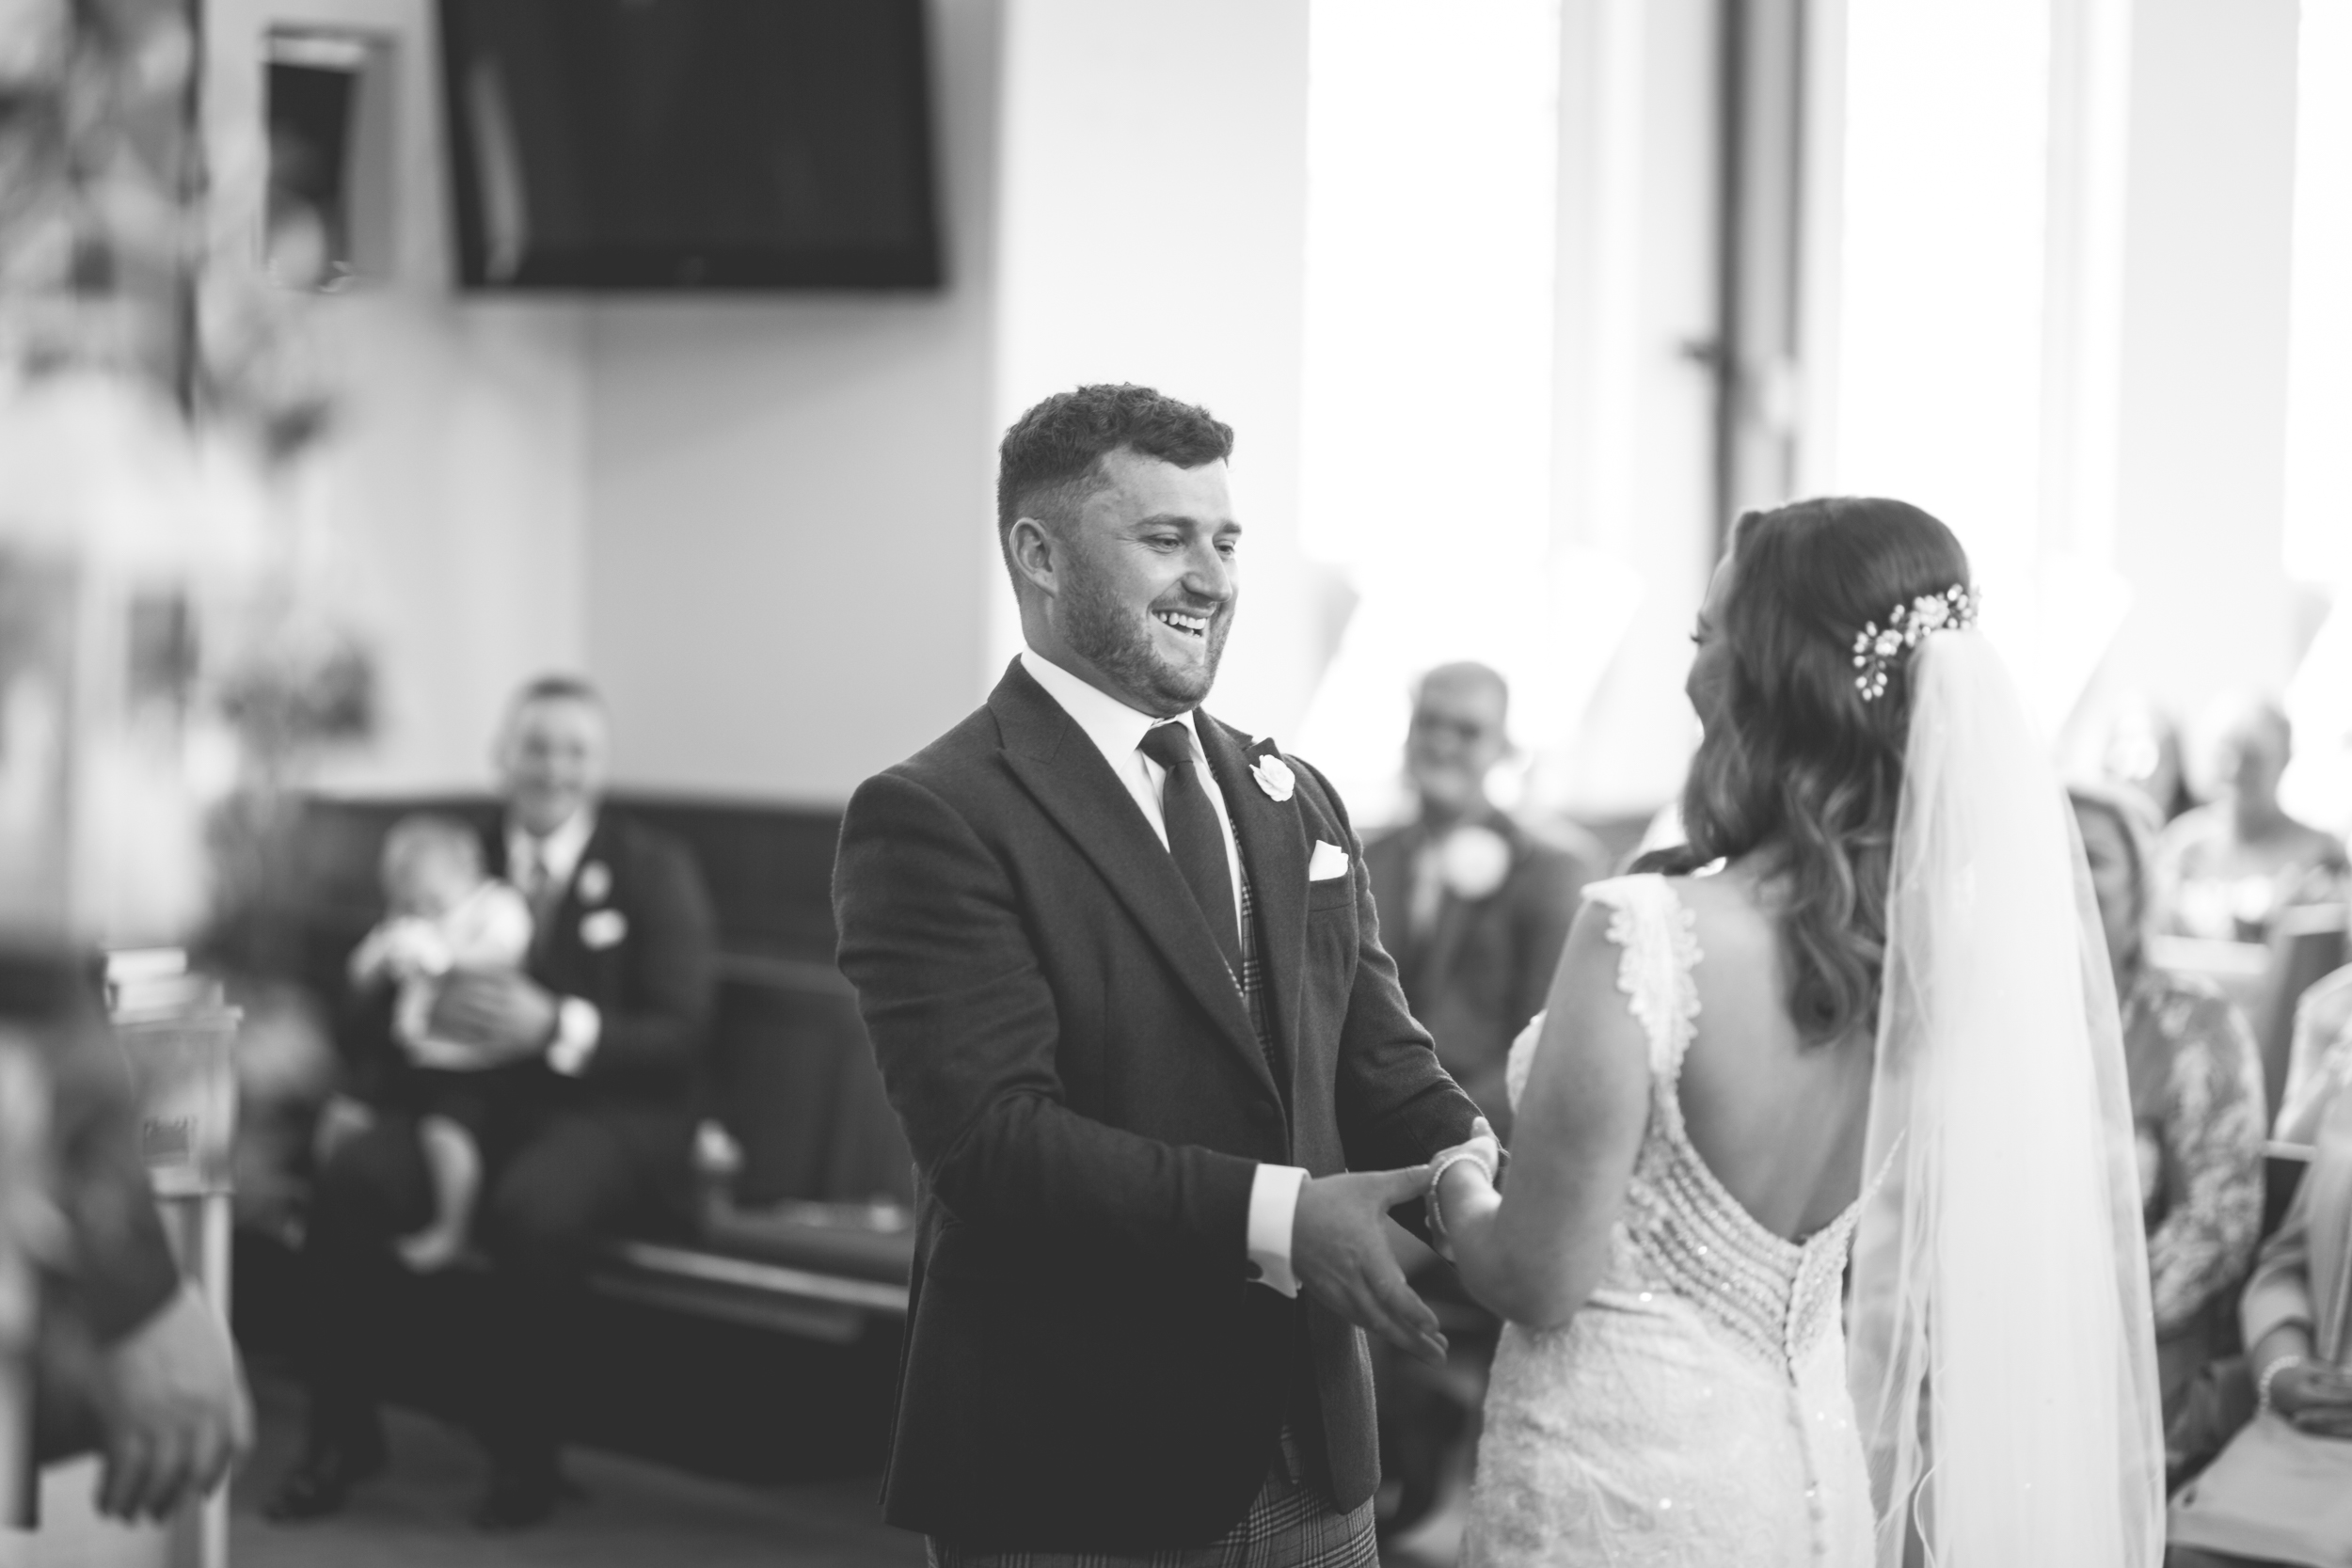 Brian McEwan | Northern Ireland Wedding Photographer | Rebecca & Michael | Ceremony-78.jpg